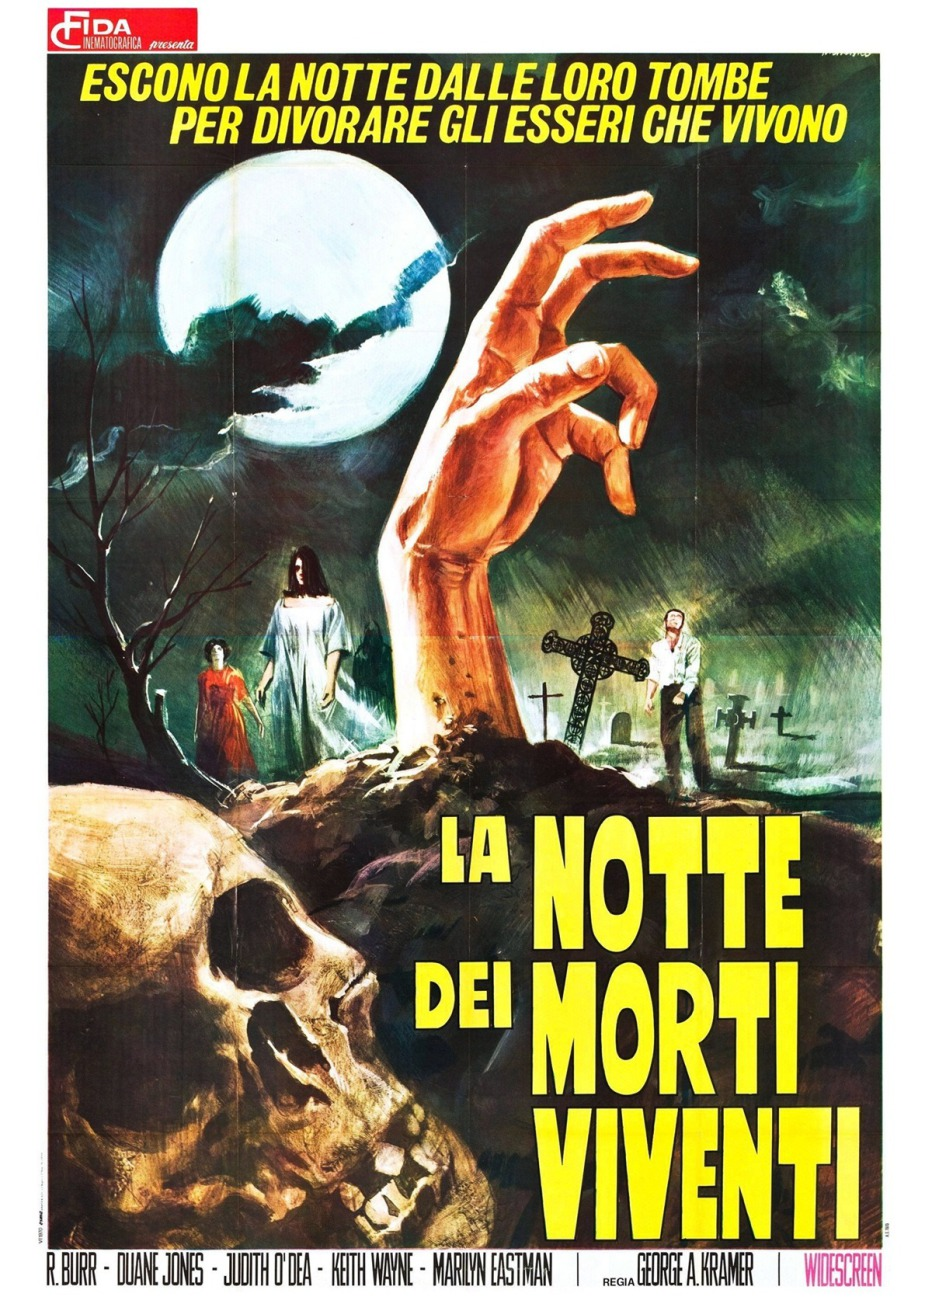 la-notte-dei-morti-viventi-night-of-living-dead-1968-george-a-romero-35.jpg